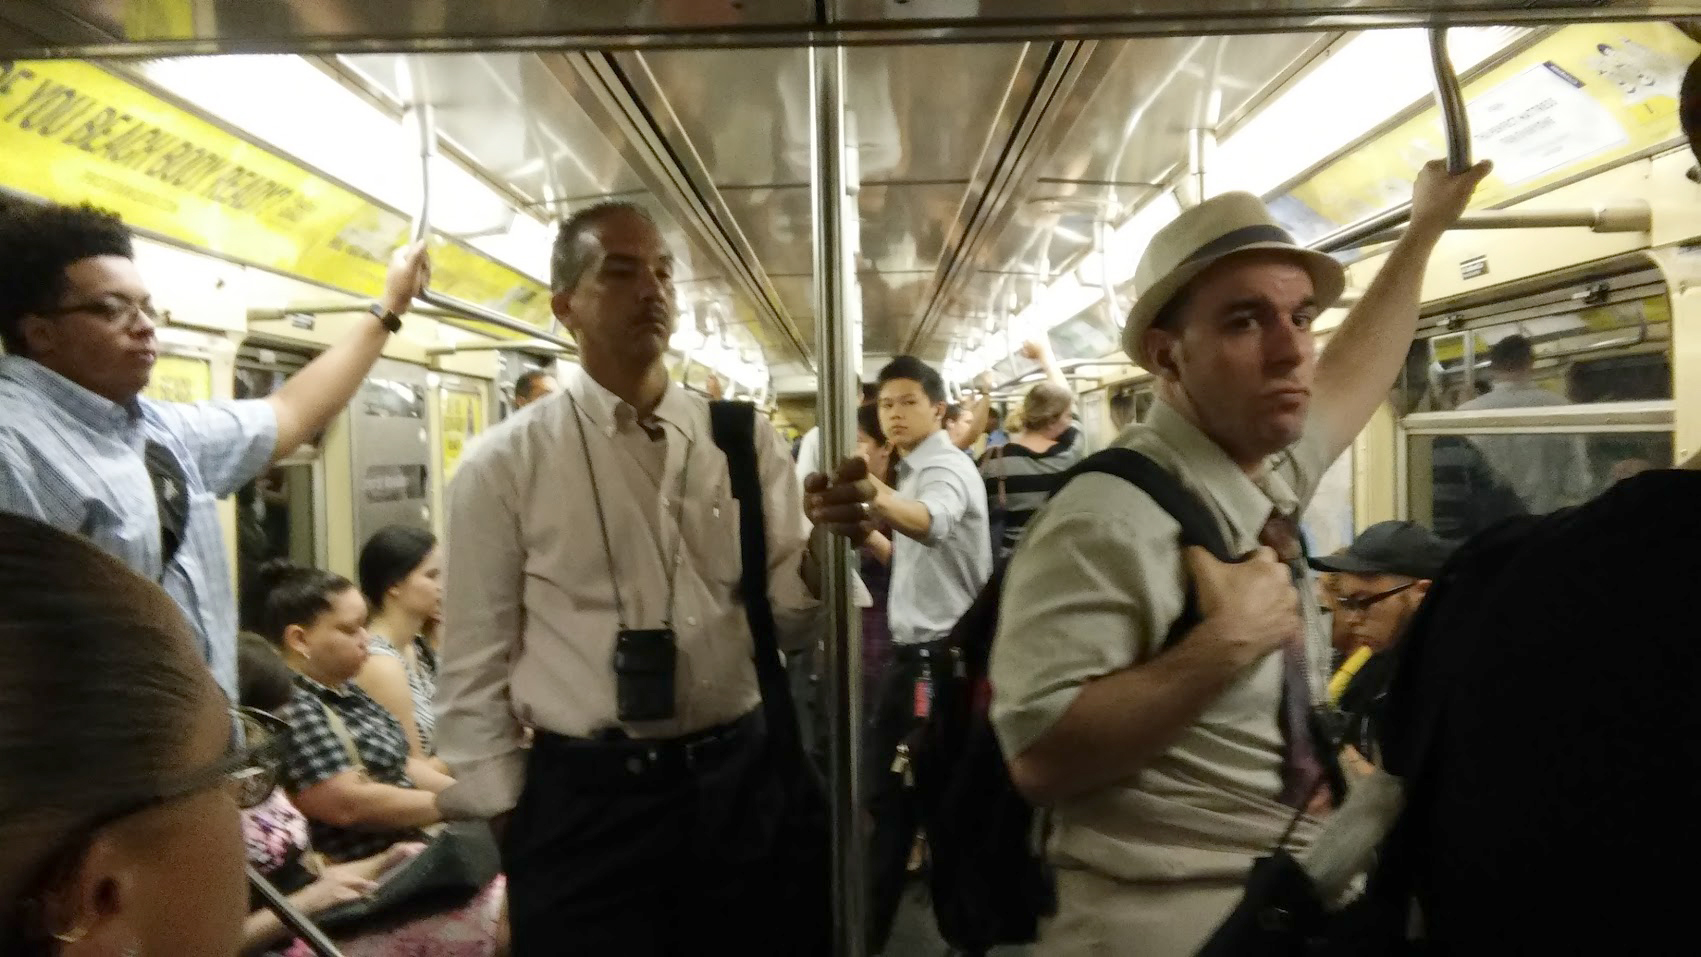 Straphangers ride the rails during the often crowded subway commute.